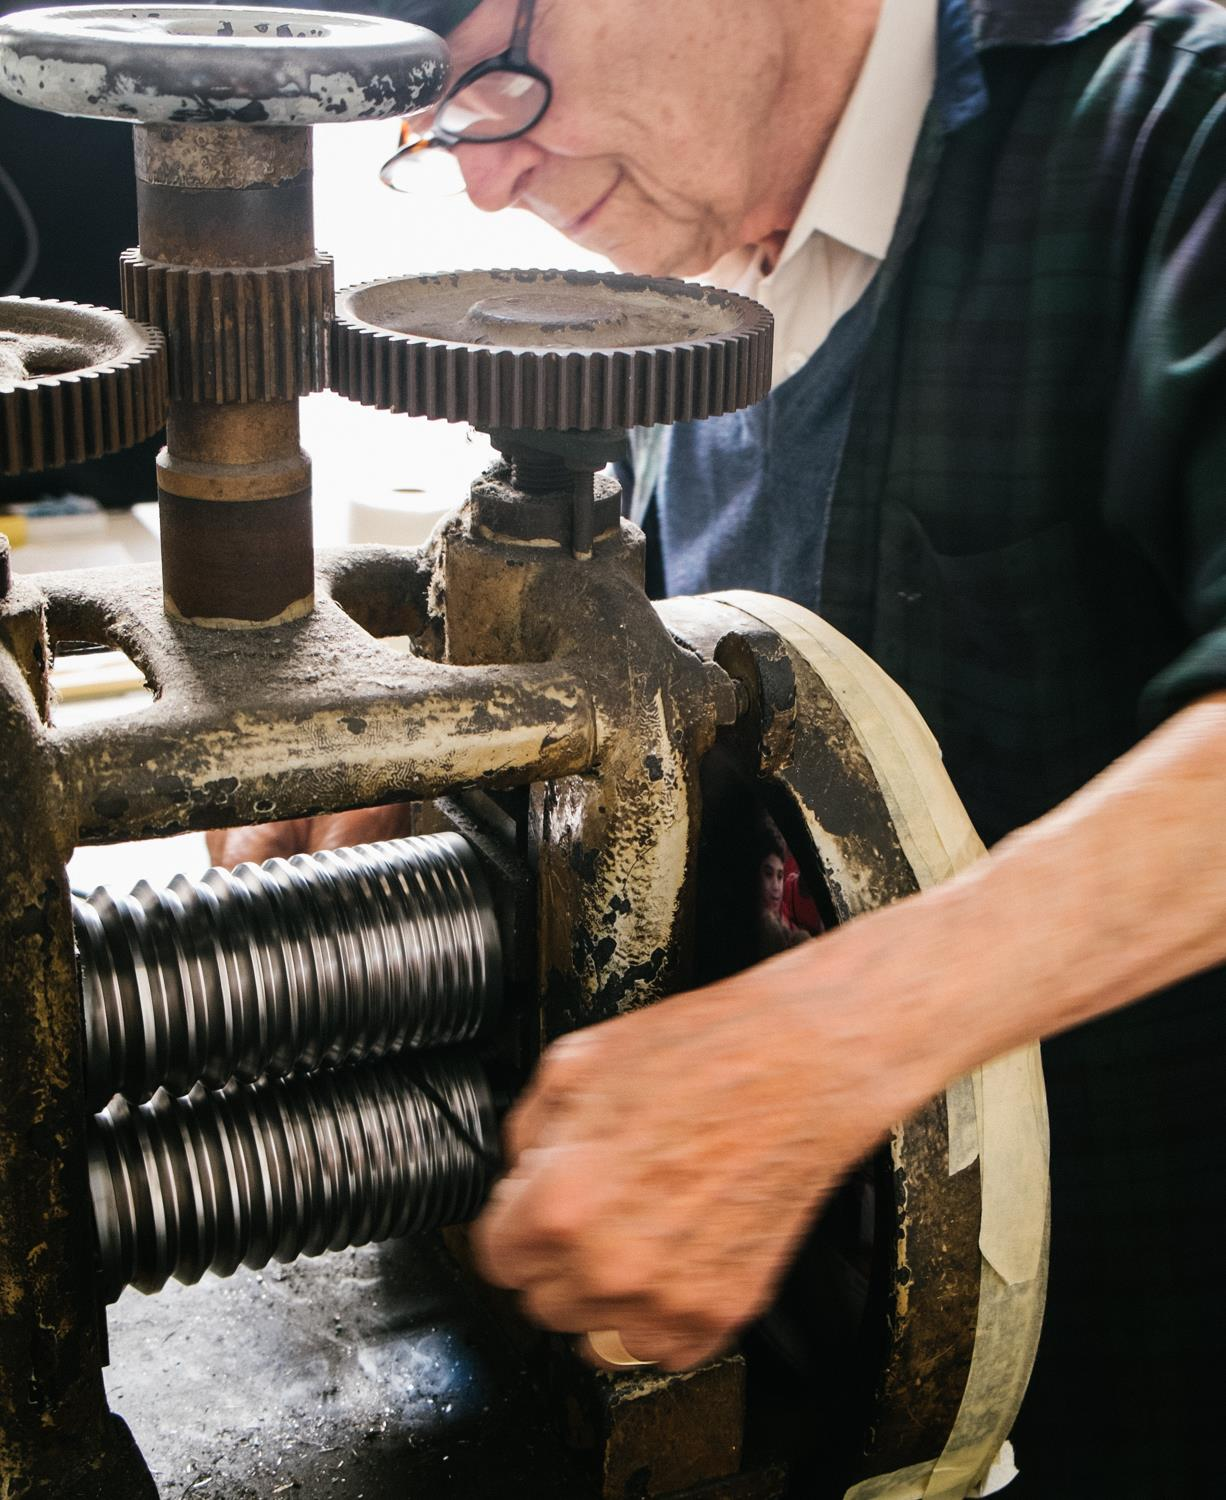 The platinum disk is passed through a metal roller multiple time in order to form wire.